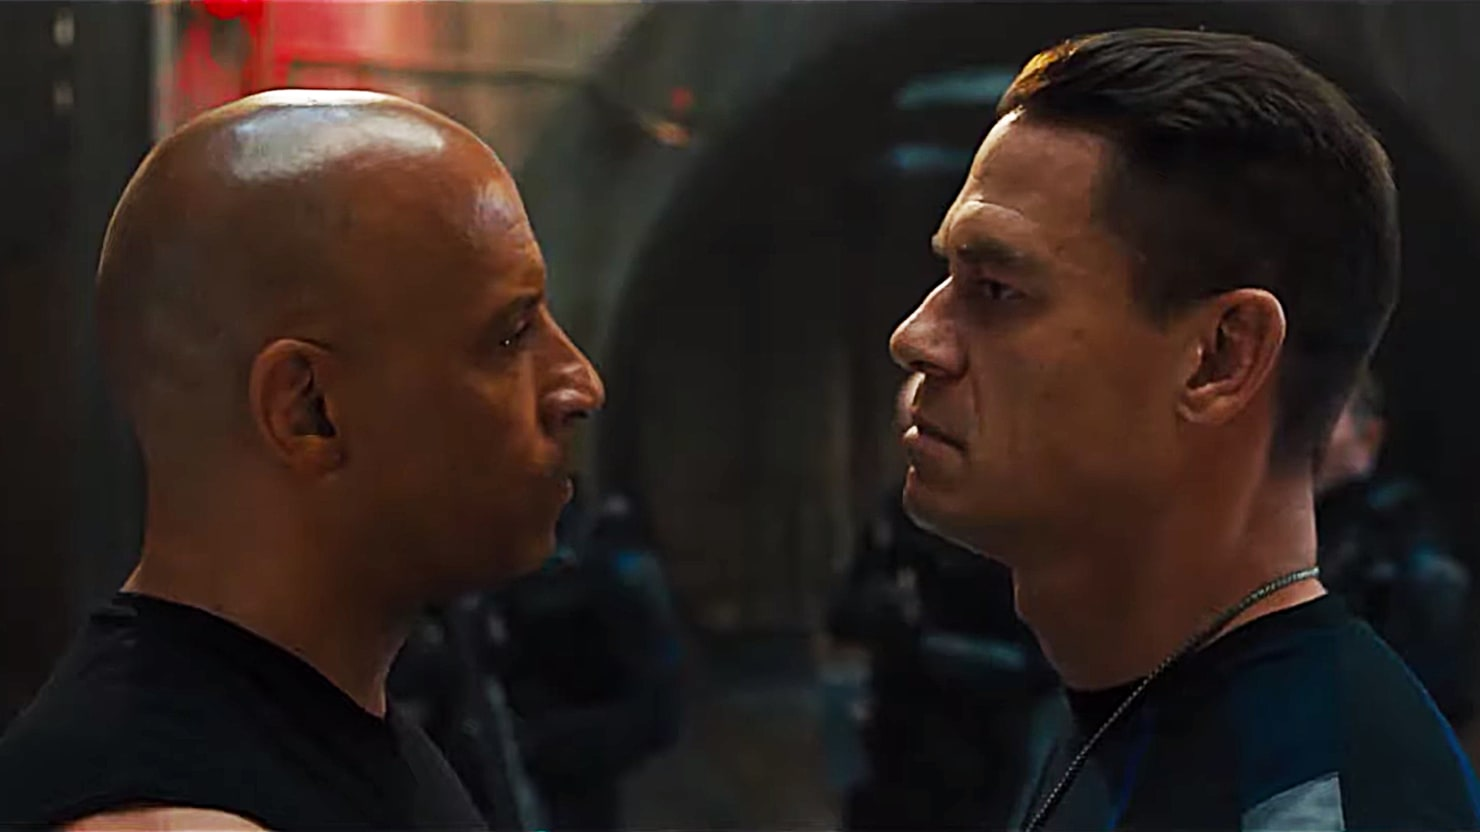 'Fast 9' Trailer Unveils John Cena as Vin Diesel's Beefy Brother